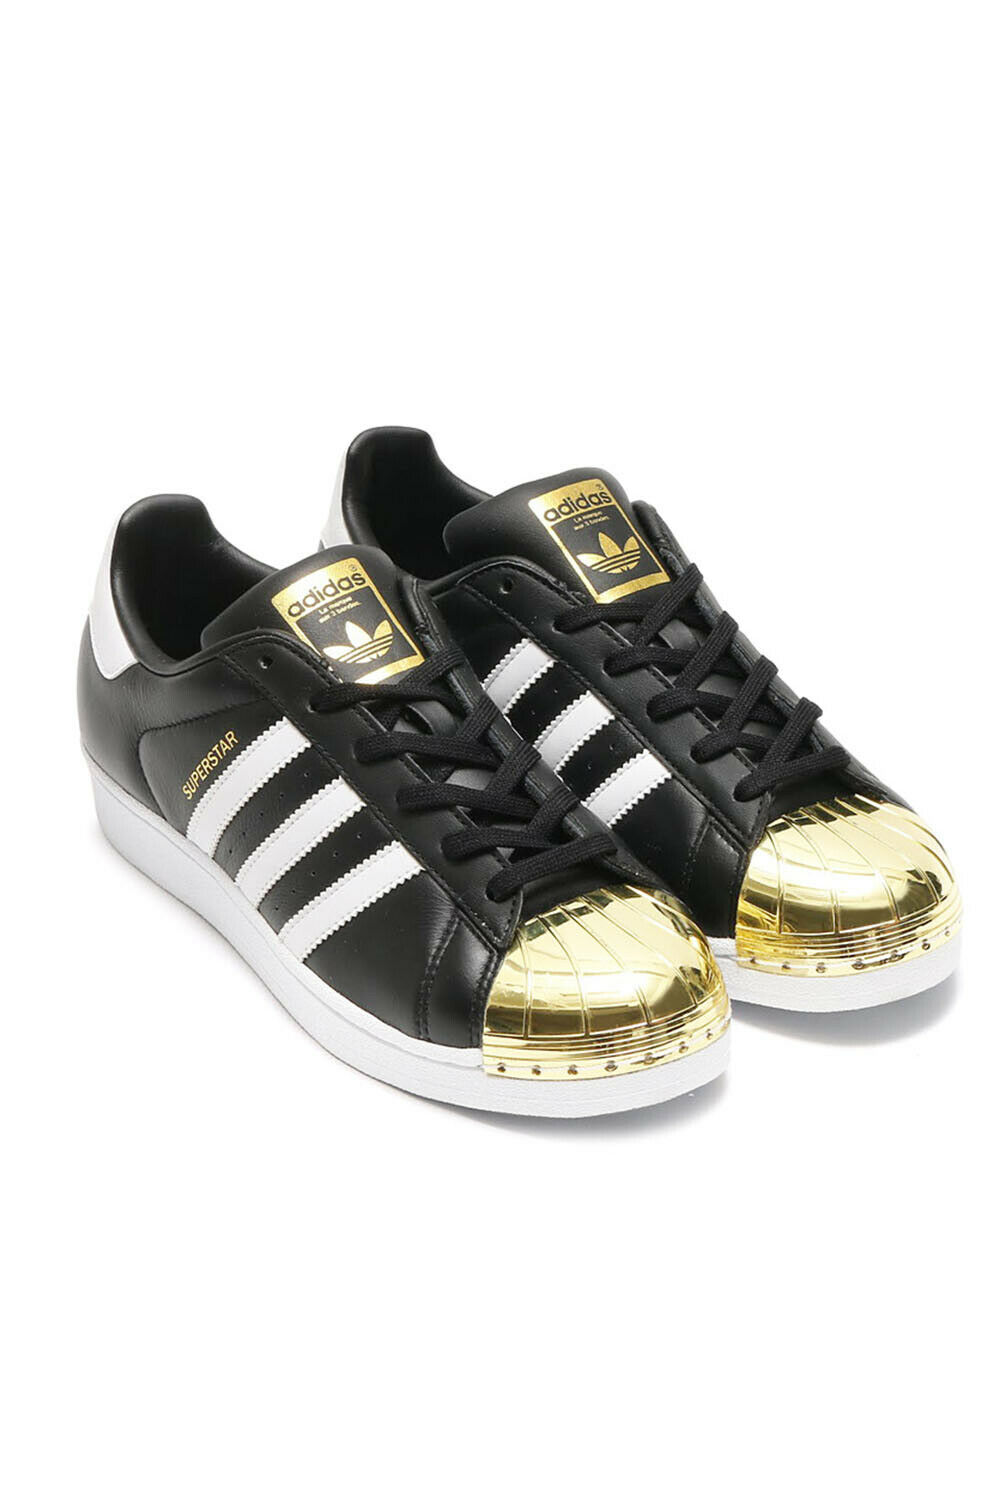 new arrival b528e 4d83e adidas Superstar Metal Toe Women's Shoes Sizes 7.5 8 Black Gold White BB5115